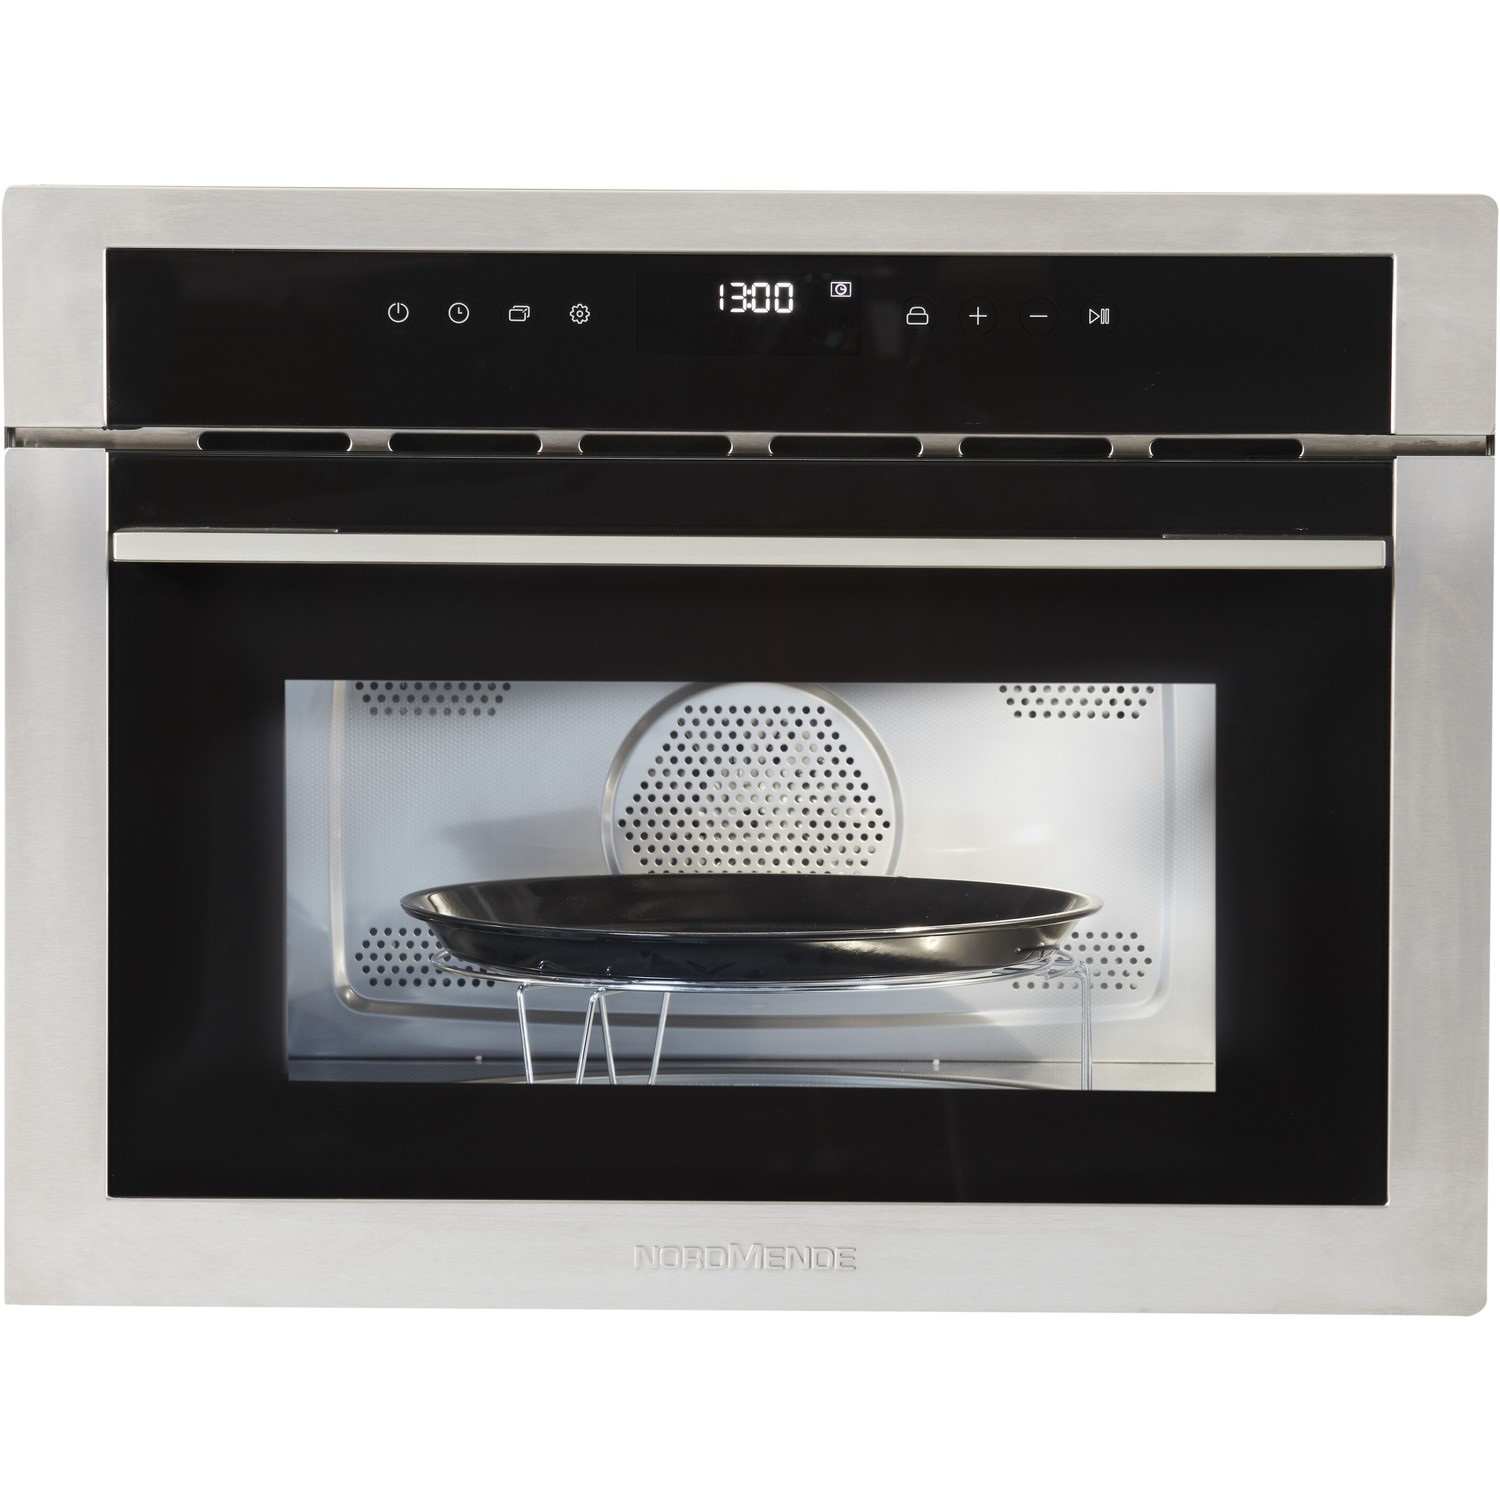 Nordmende Microwave Oven | in